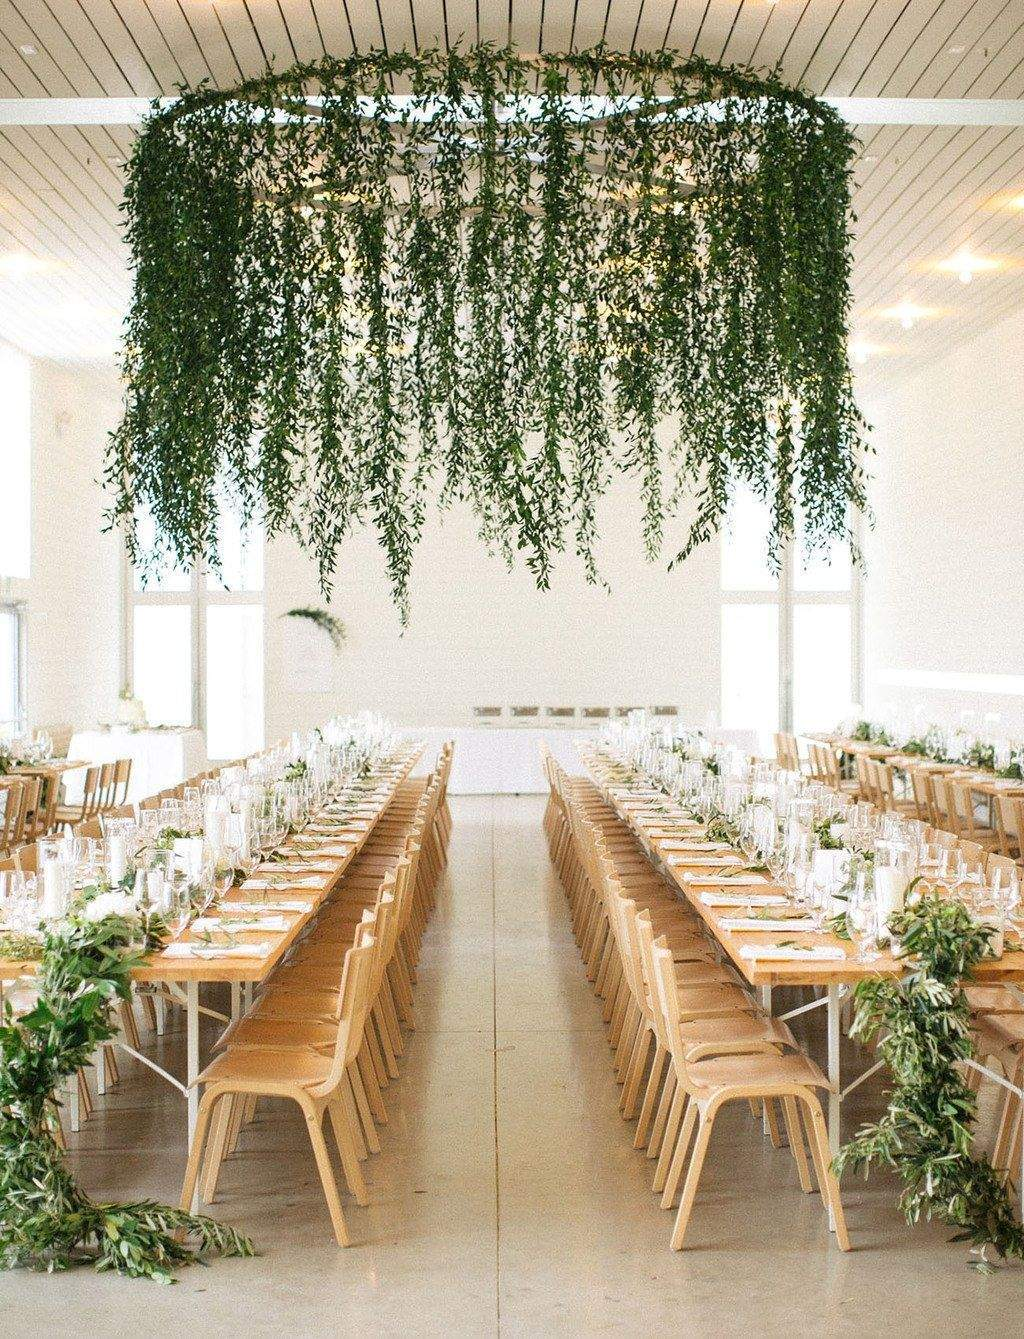 hochzeit im garten elegant 28 greenery wedding decor ideas that are fresh for spring of hochzeit im garten